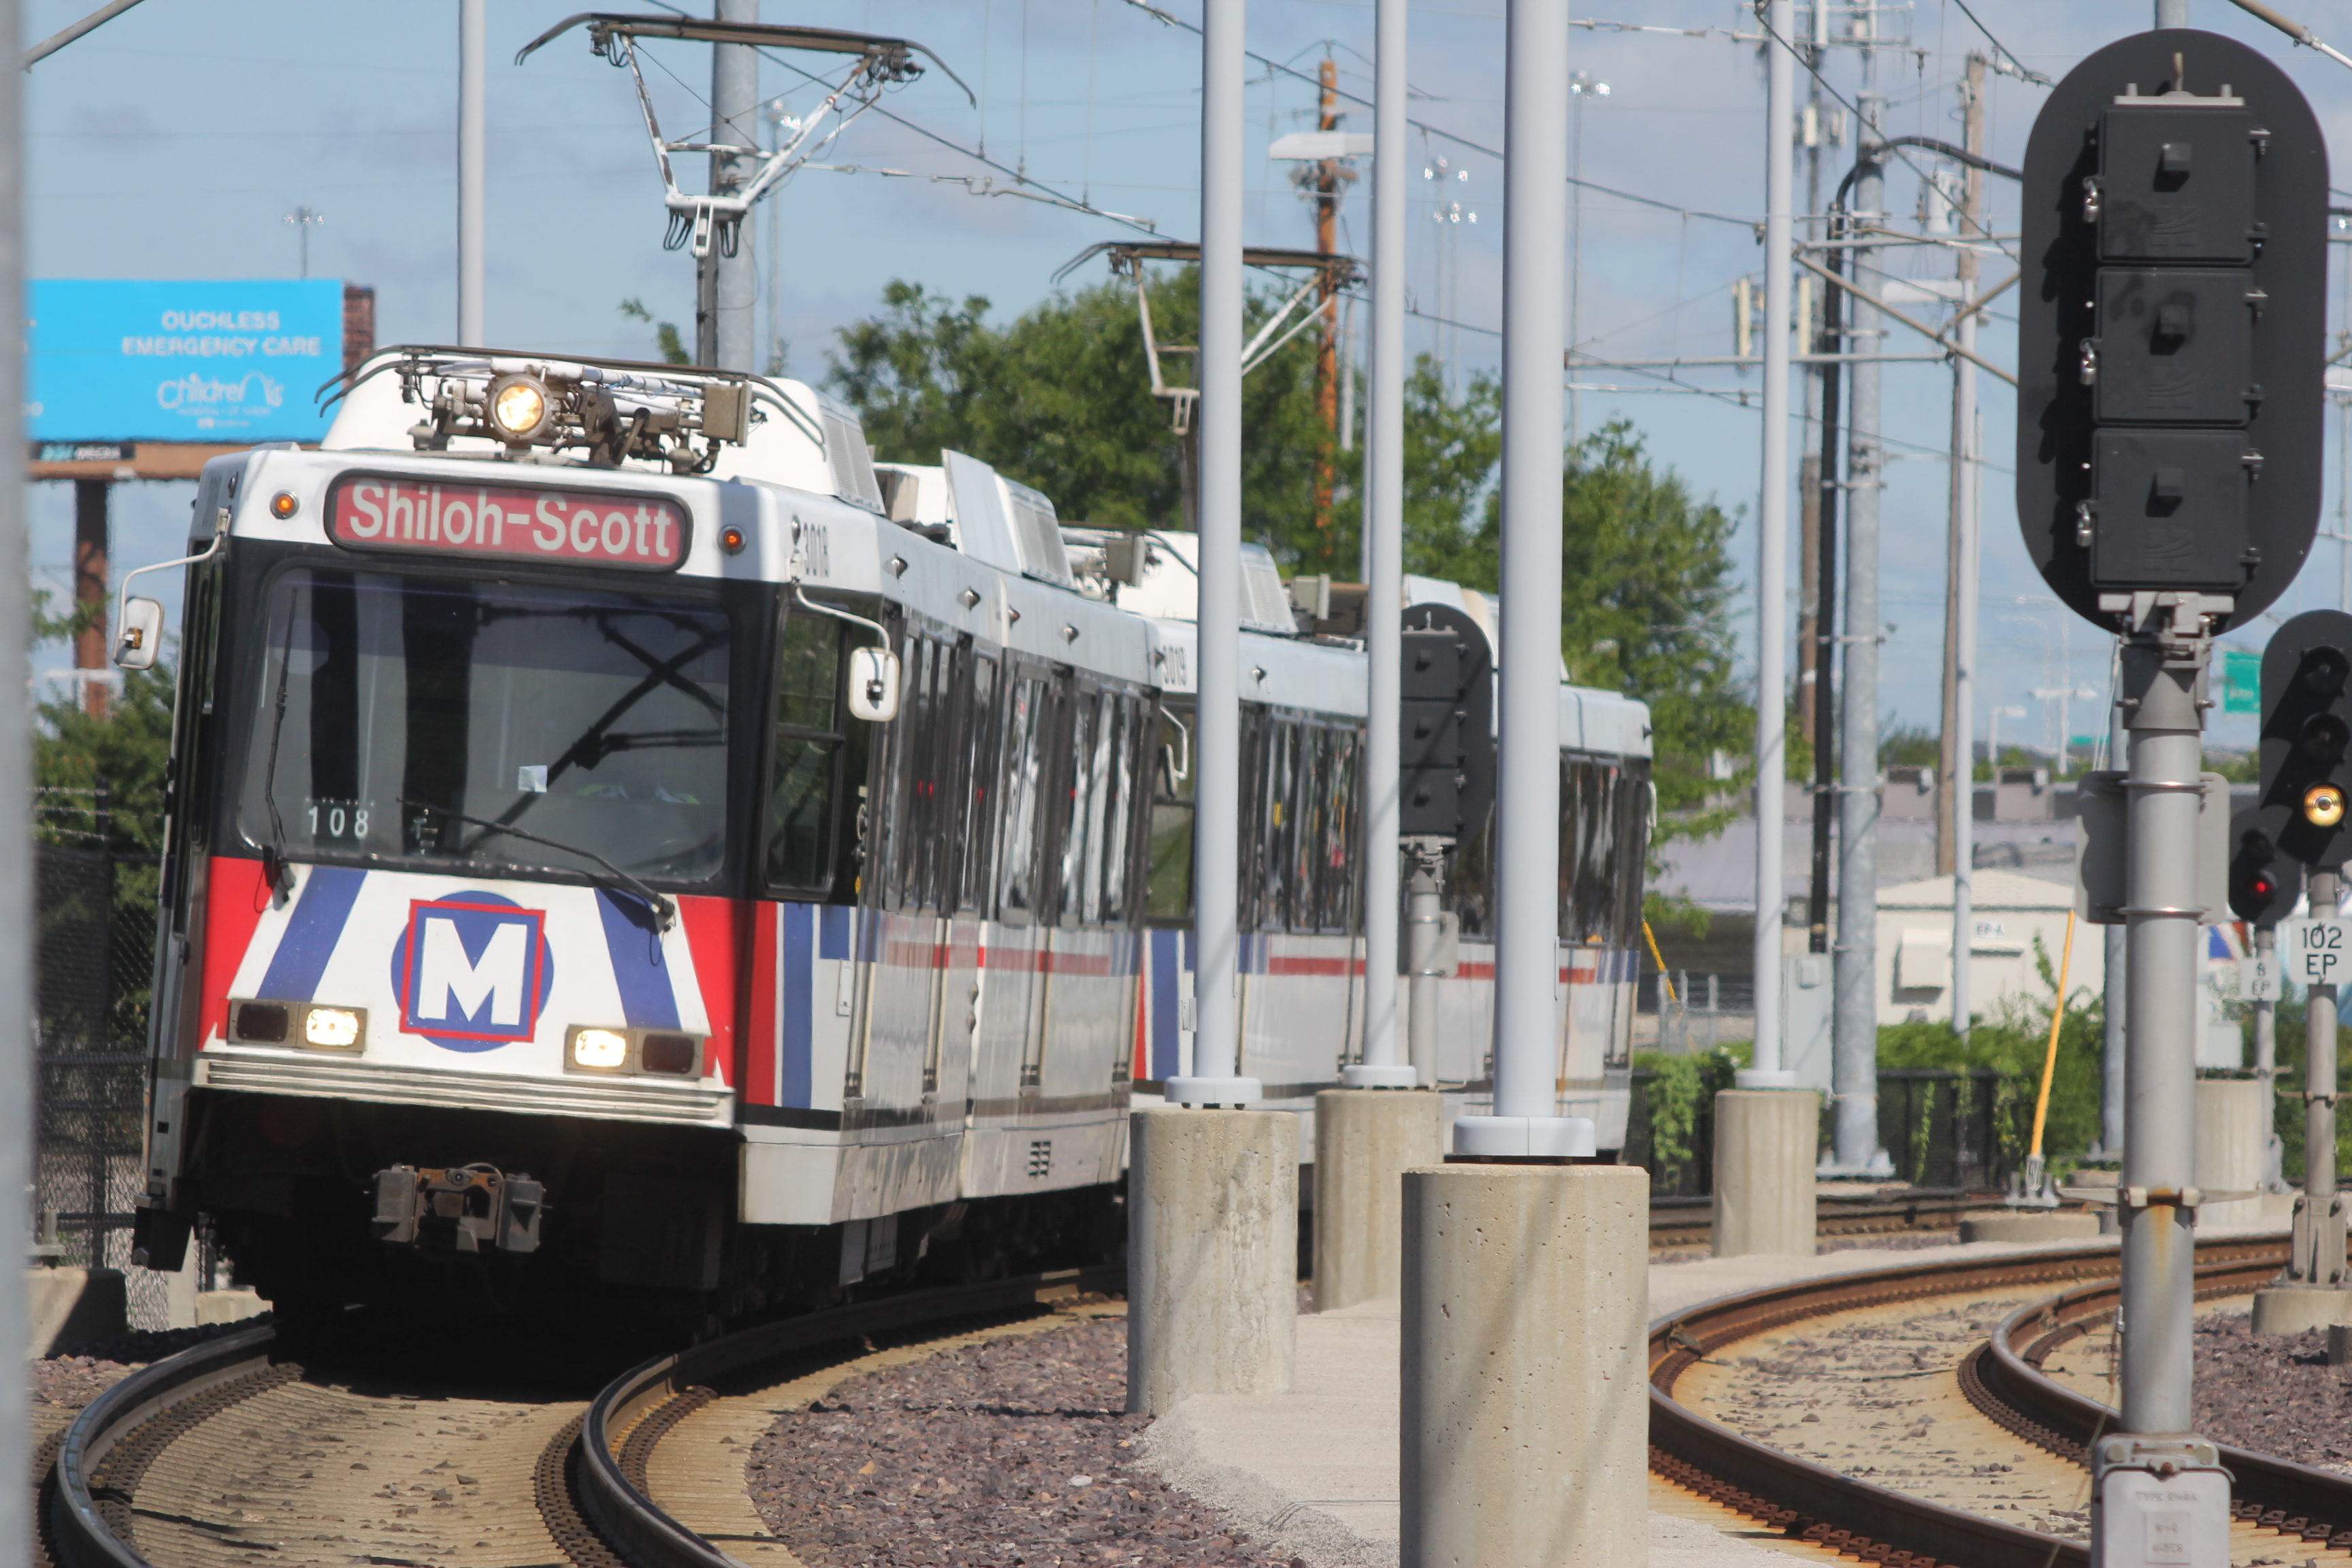 St Clair Co and St Louis officials map MetroLink security plan